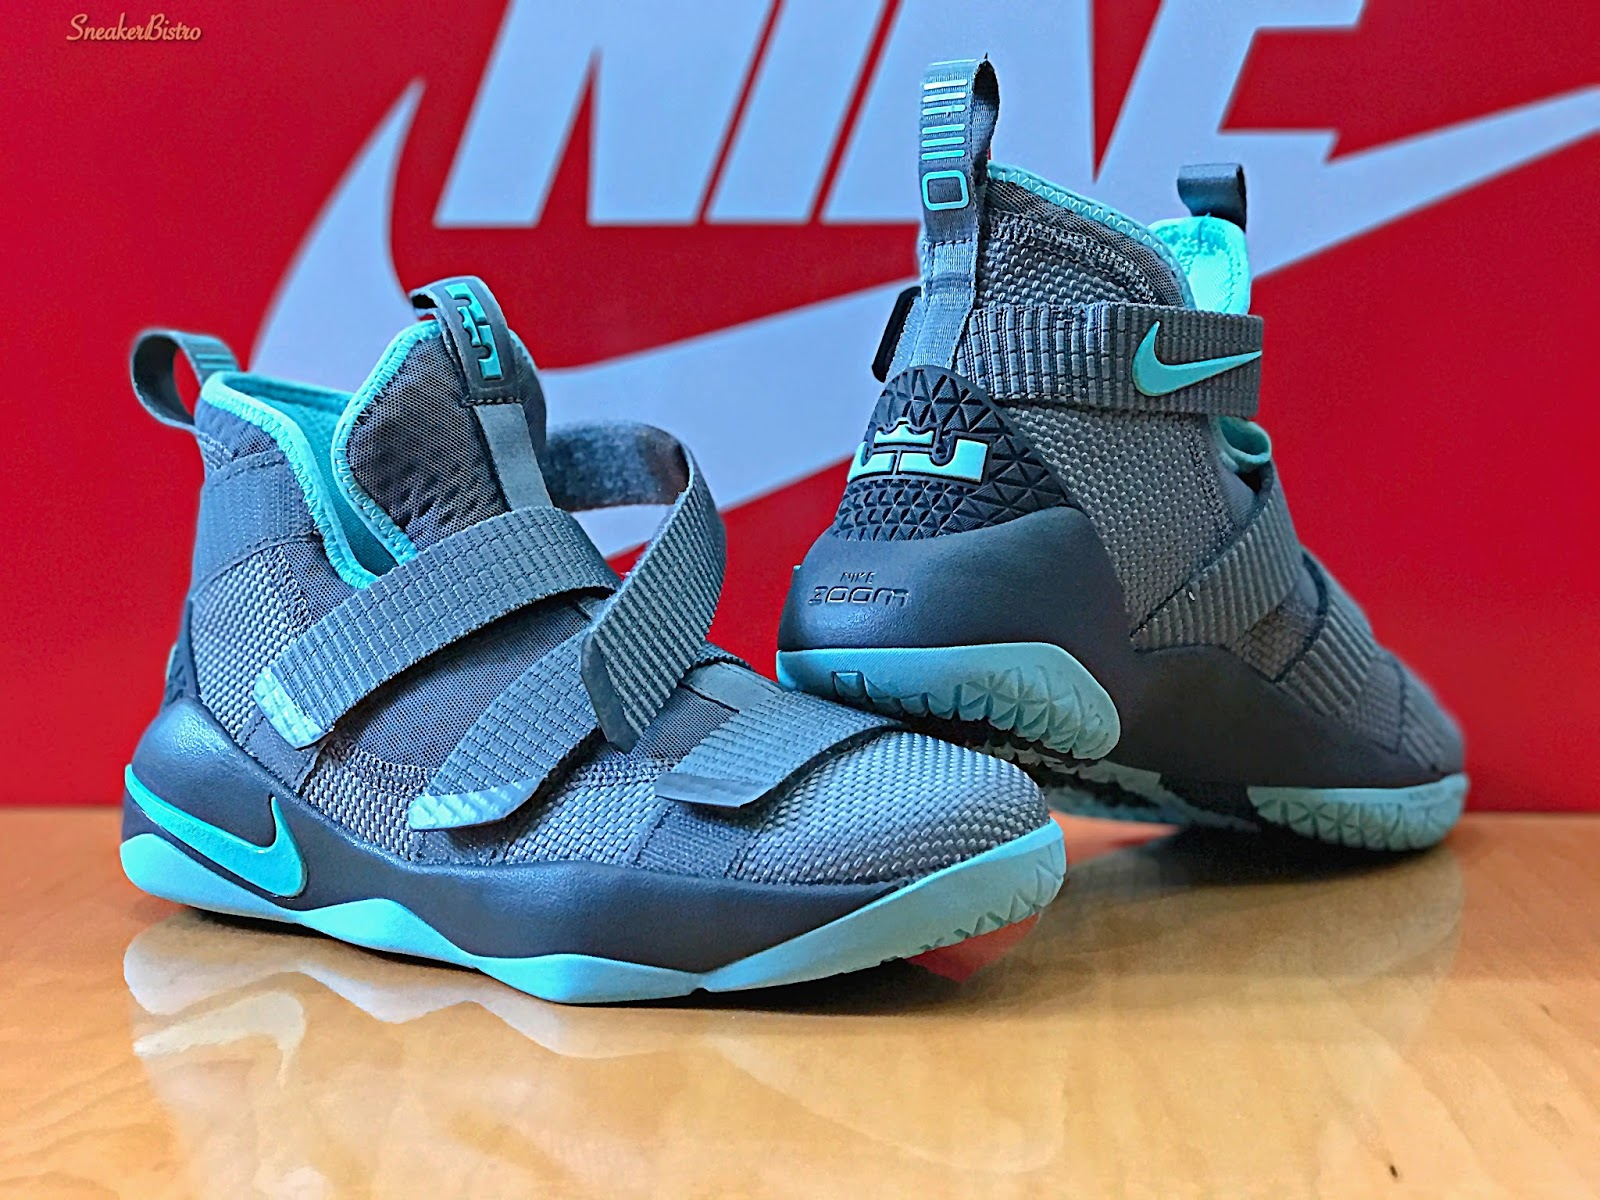 4f397c63013 ... coupon code for lebron soldier xi gs cool gray island green 0c58e 2c455